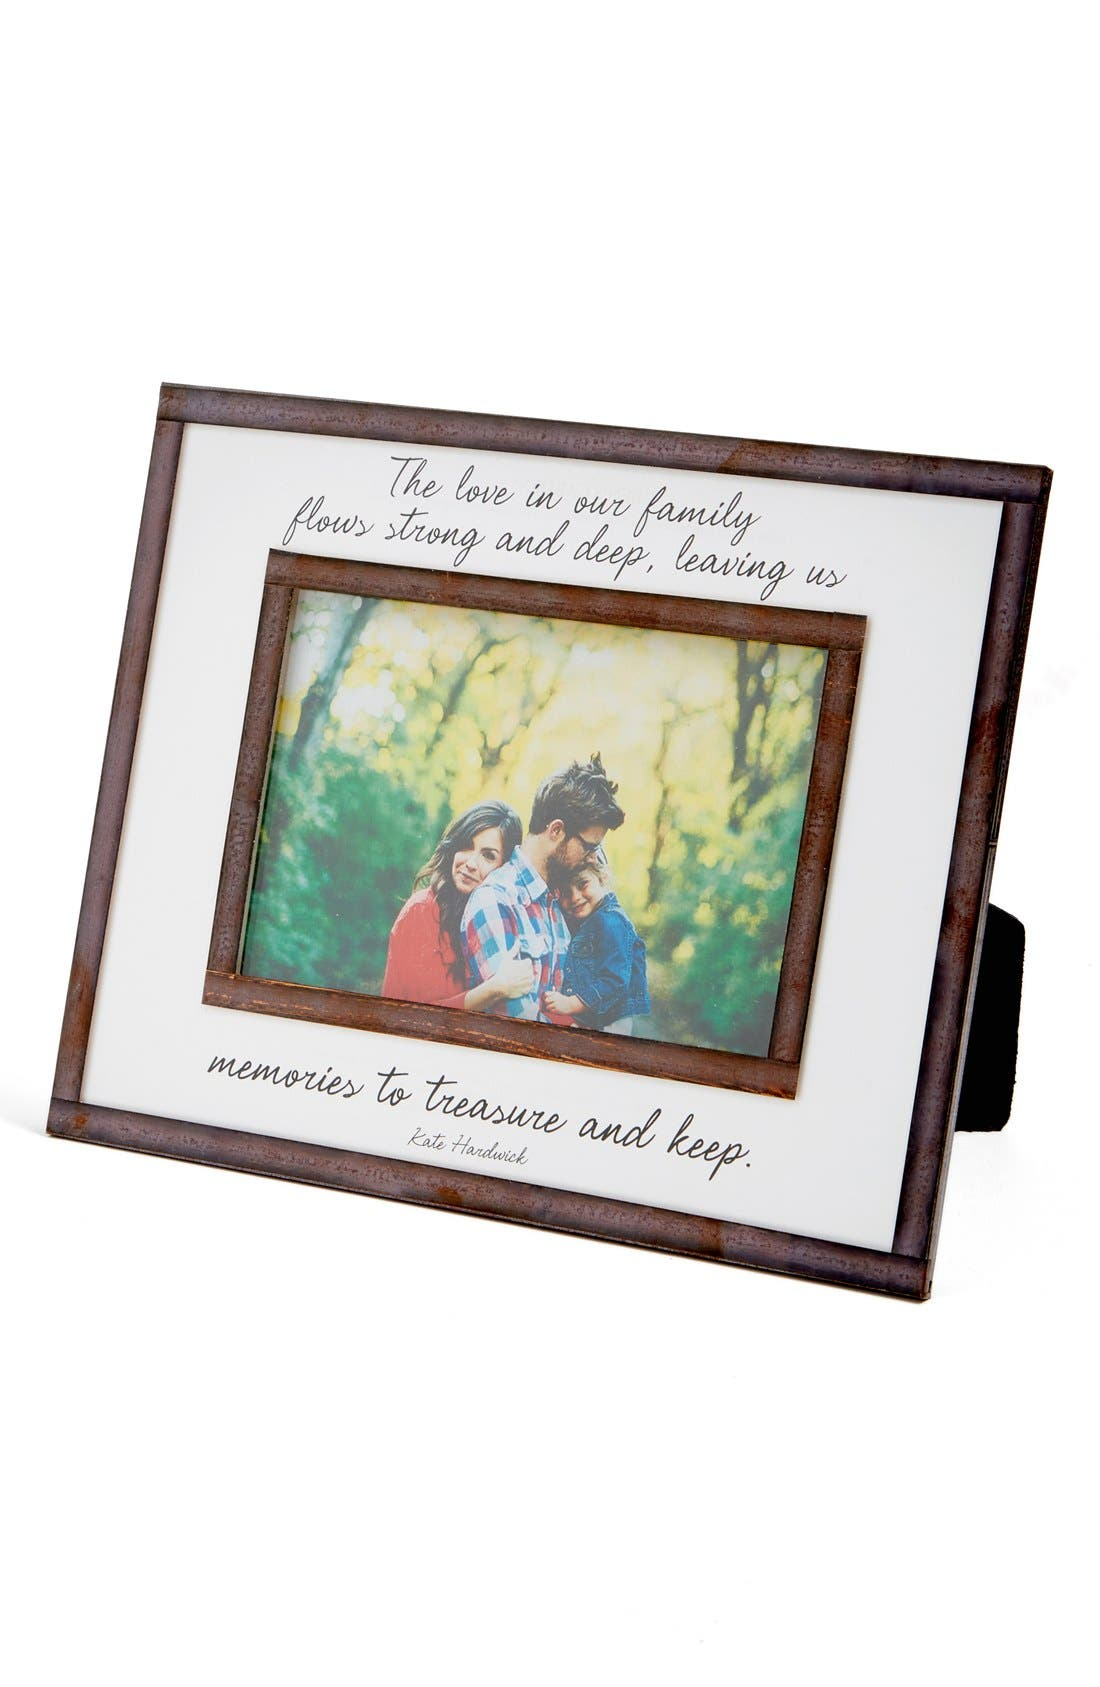 Alternate Image 1 Selected - Ben's Garden Love in Our Family Picture Frame